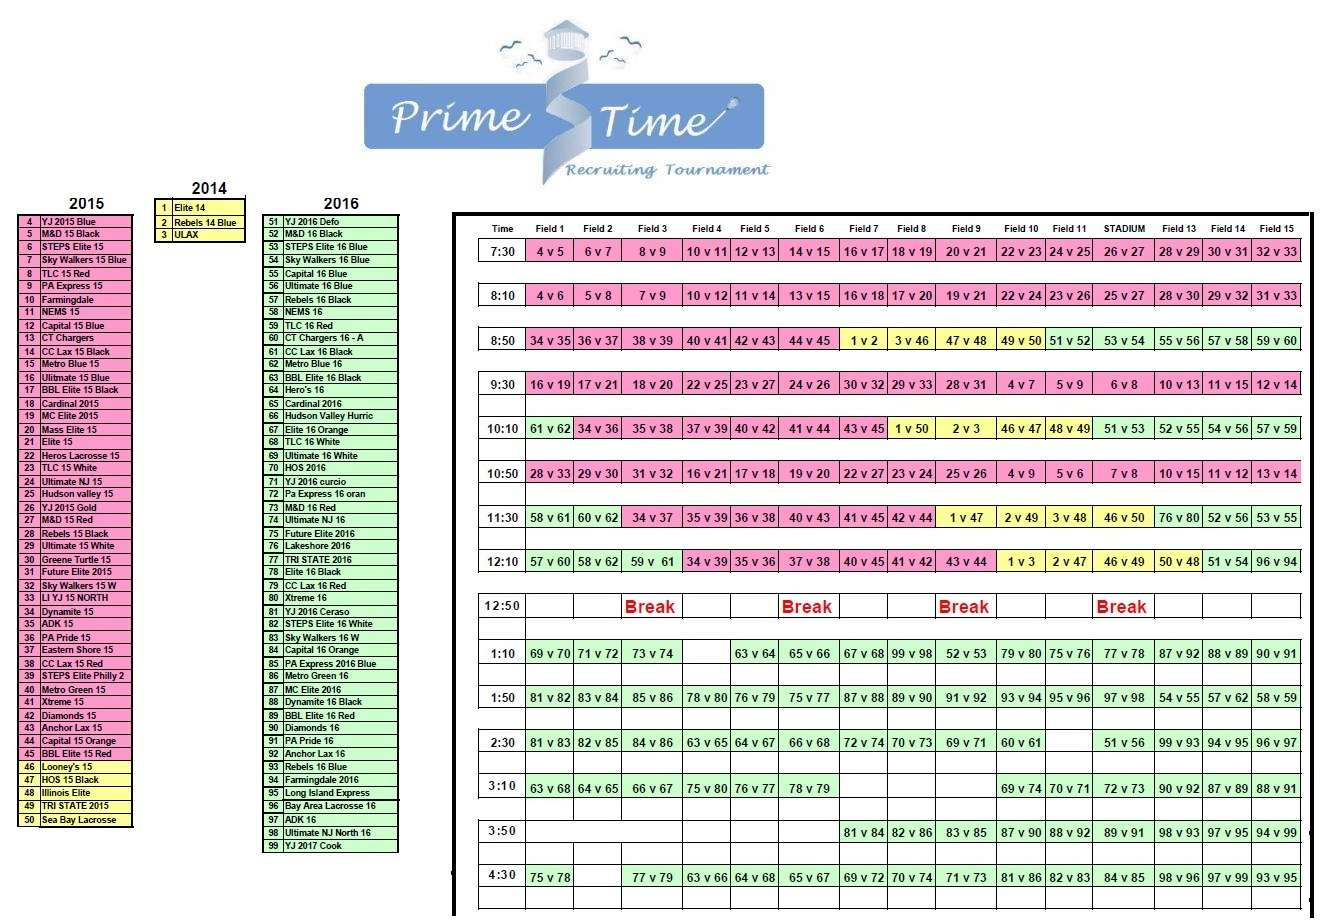 2013 Prime Time Teams & Schedules